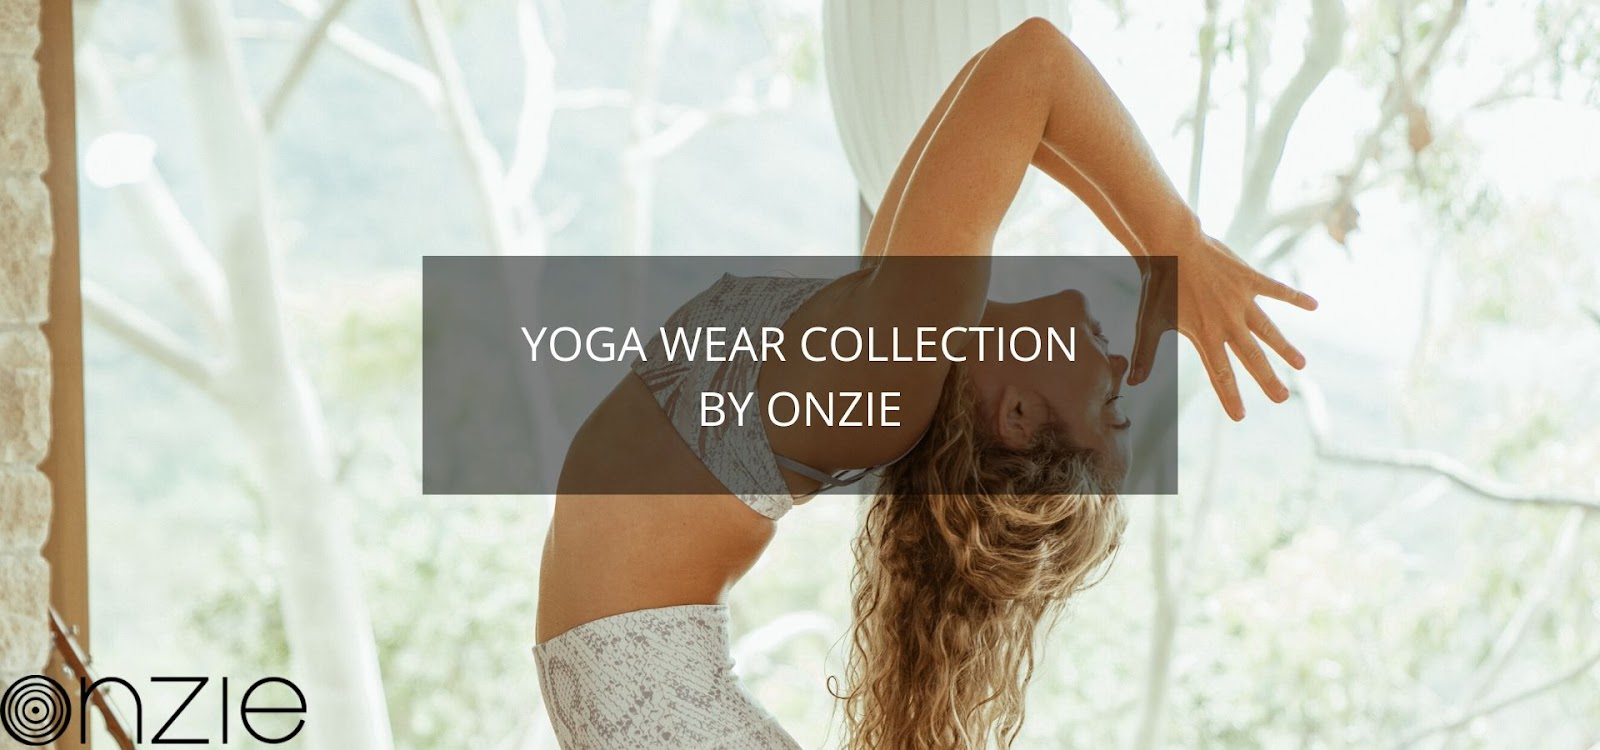 Looking for Yoga fashion in 2020 ? Then explore and shop online beautiful yoga wear collection by Onzie in Dubai , United Arab Emirates (UAE) .